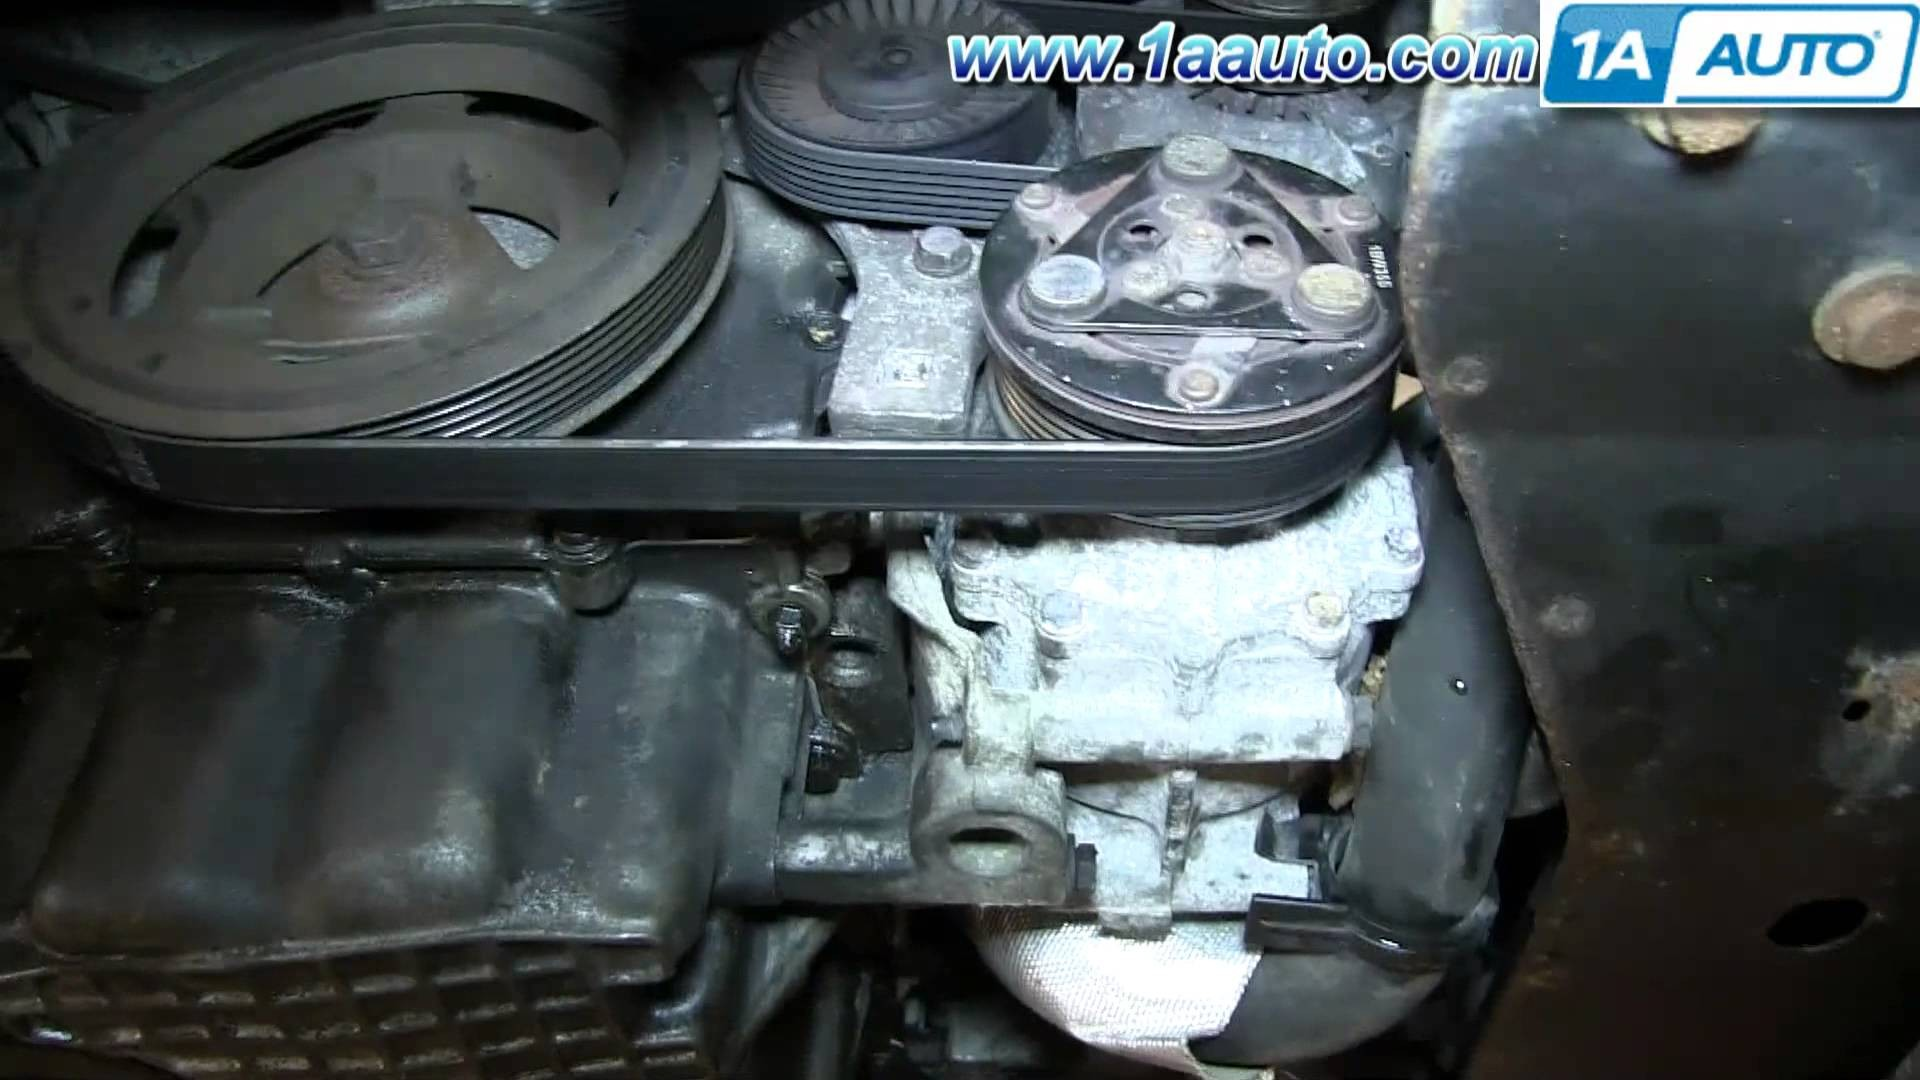 2005 Dodge Stratus Engine Diagram How to Install Replace Power Steering Belt 2 7l Chrysler Sebring Of 2005 Dodge Stratus Engine Diagram